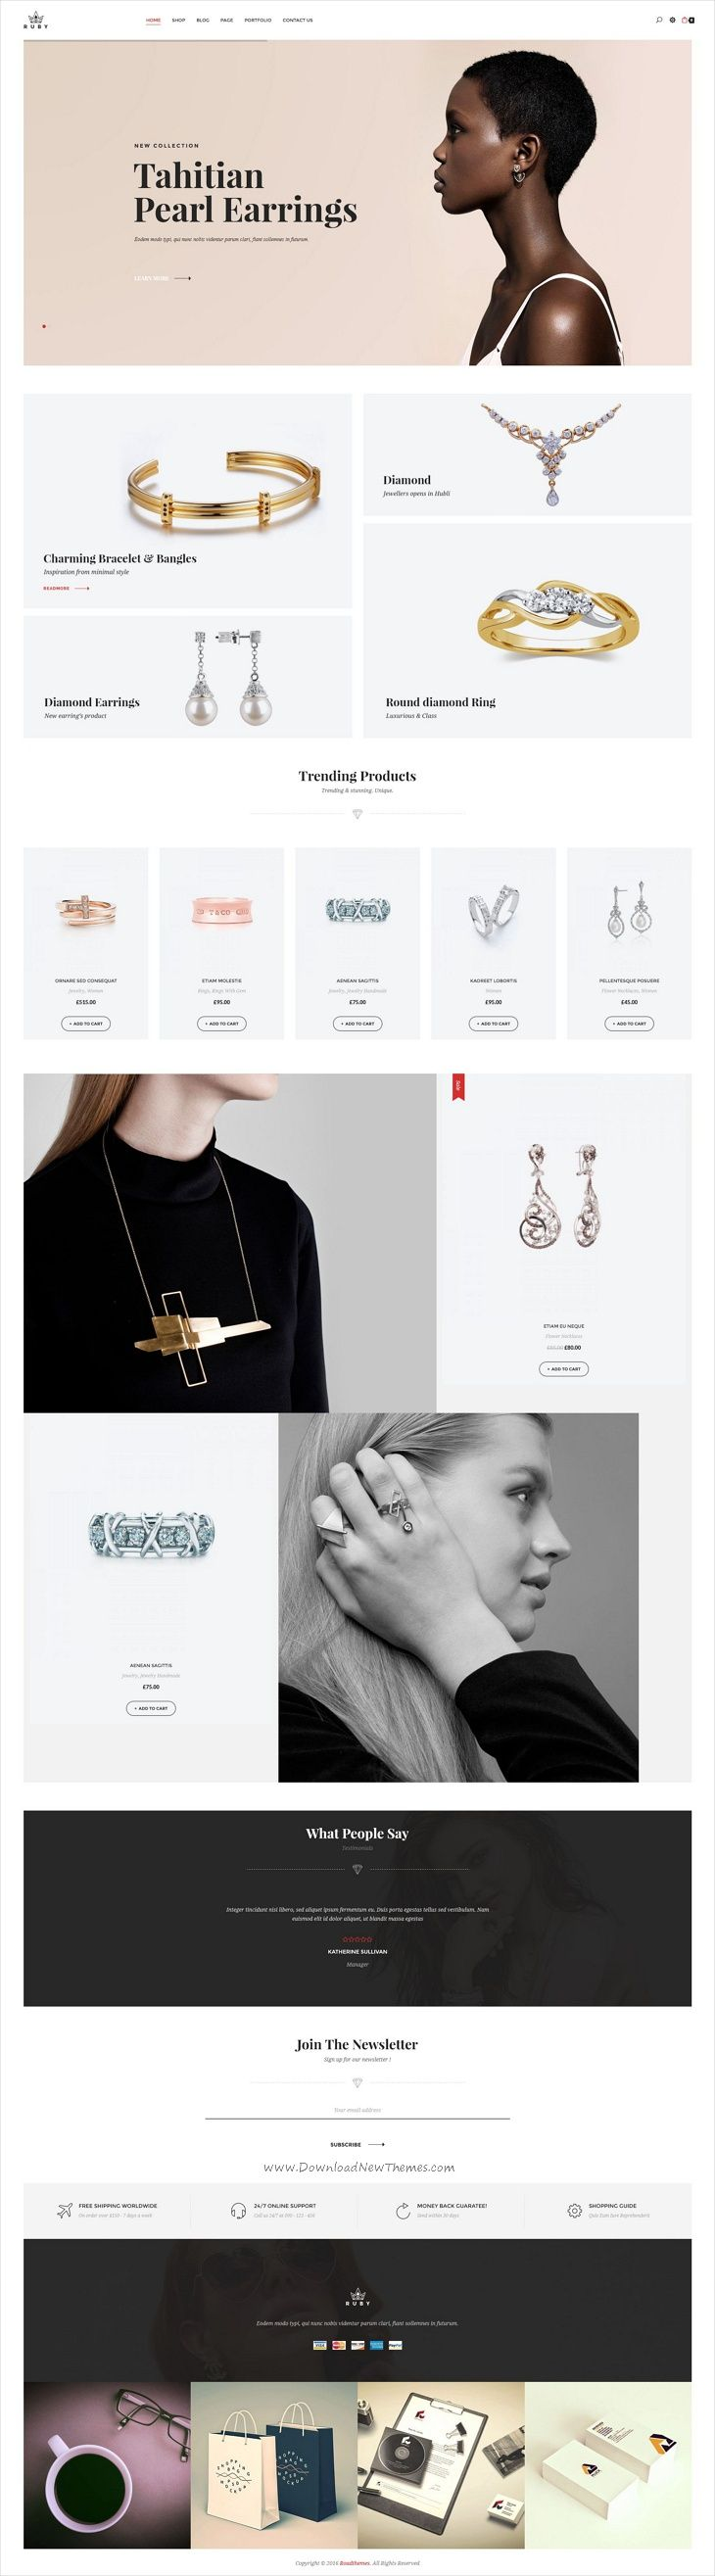 Ruby is an elegant and modern design responsive #WordPress theme for stunning #jewelry store #eCommerce website with 6 homepage layouts download now➩  https://themeforest.net/item/ruby-fashion-responsive-wordpress-theme/19460163?ref=Datasata